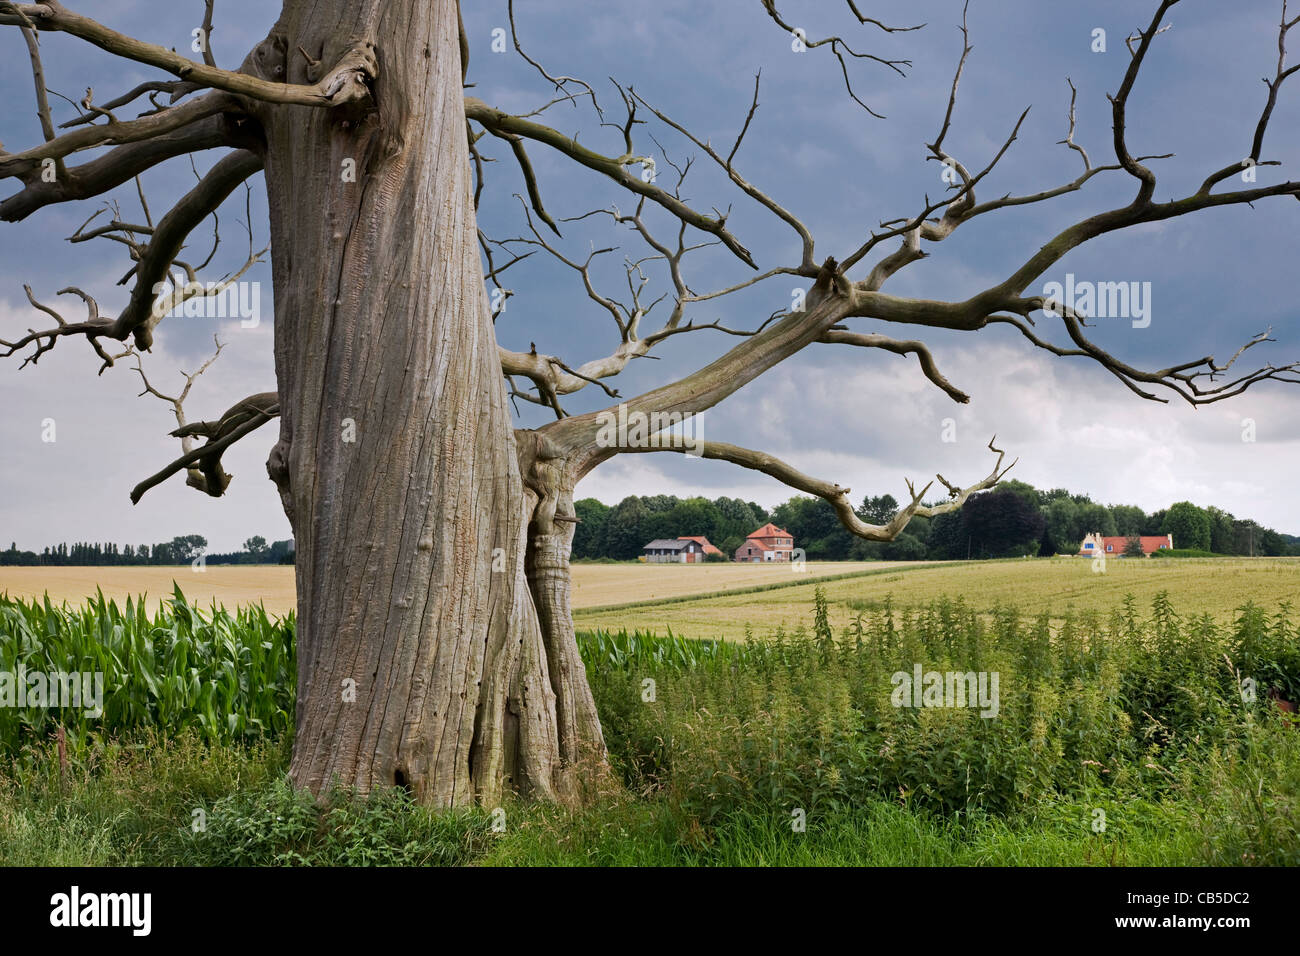 Creepy trunk and branches of dead sweet chestnut / marron tree (Castanea sativa) in field - Stock Image